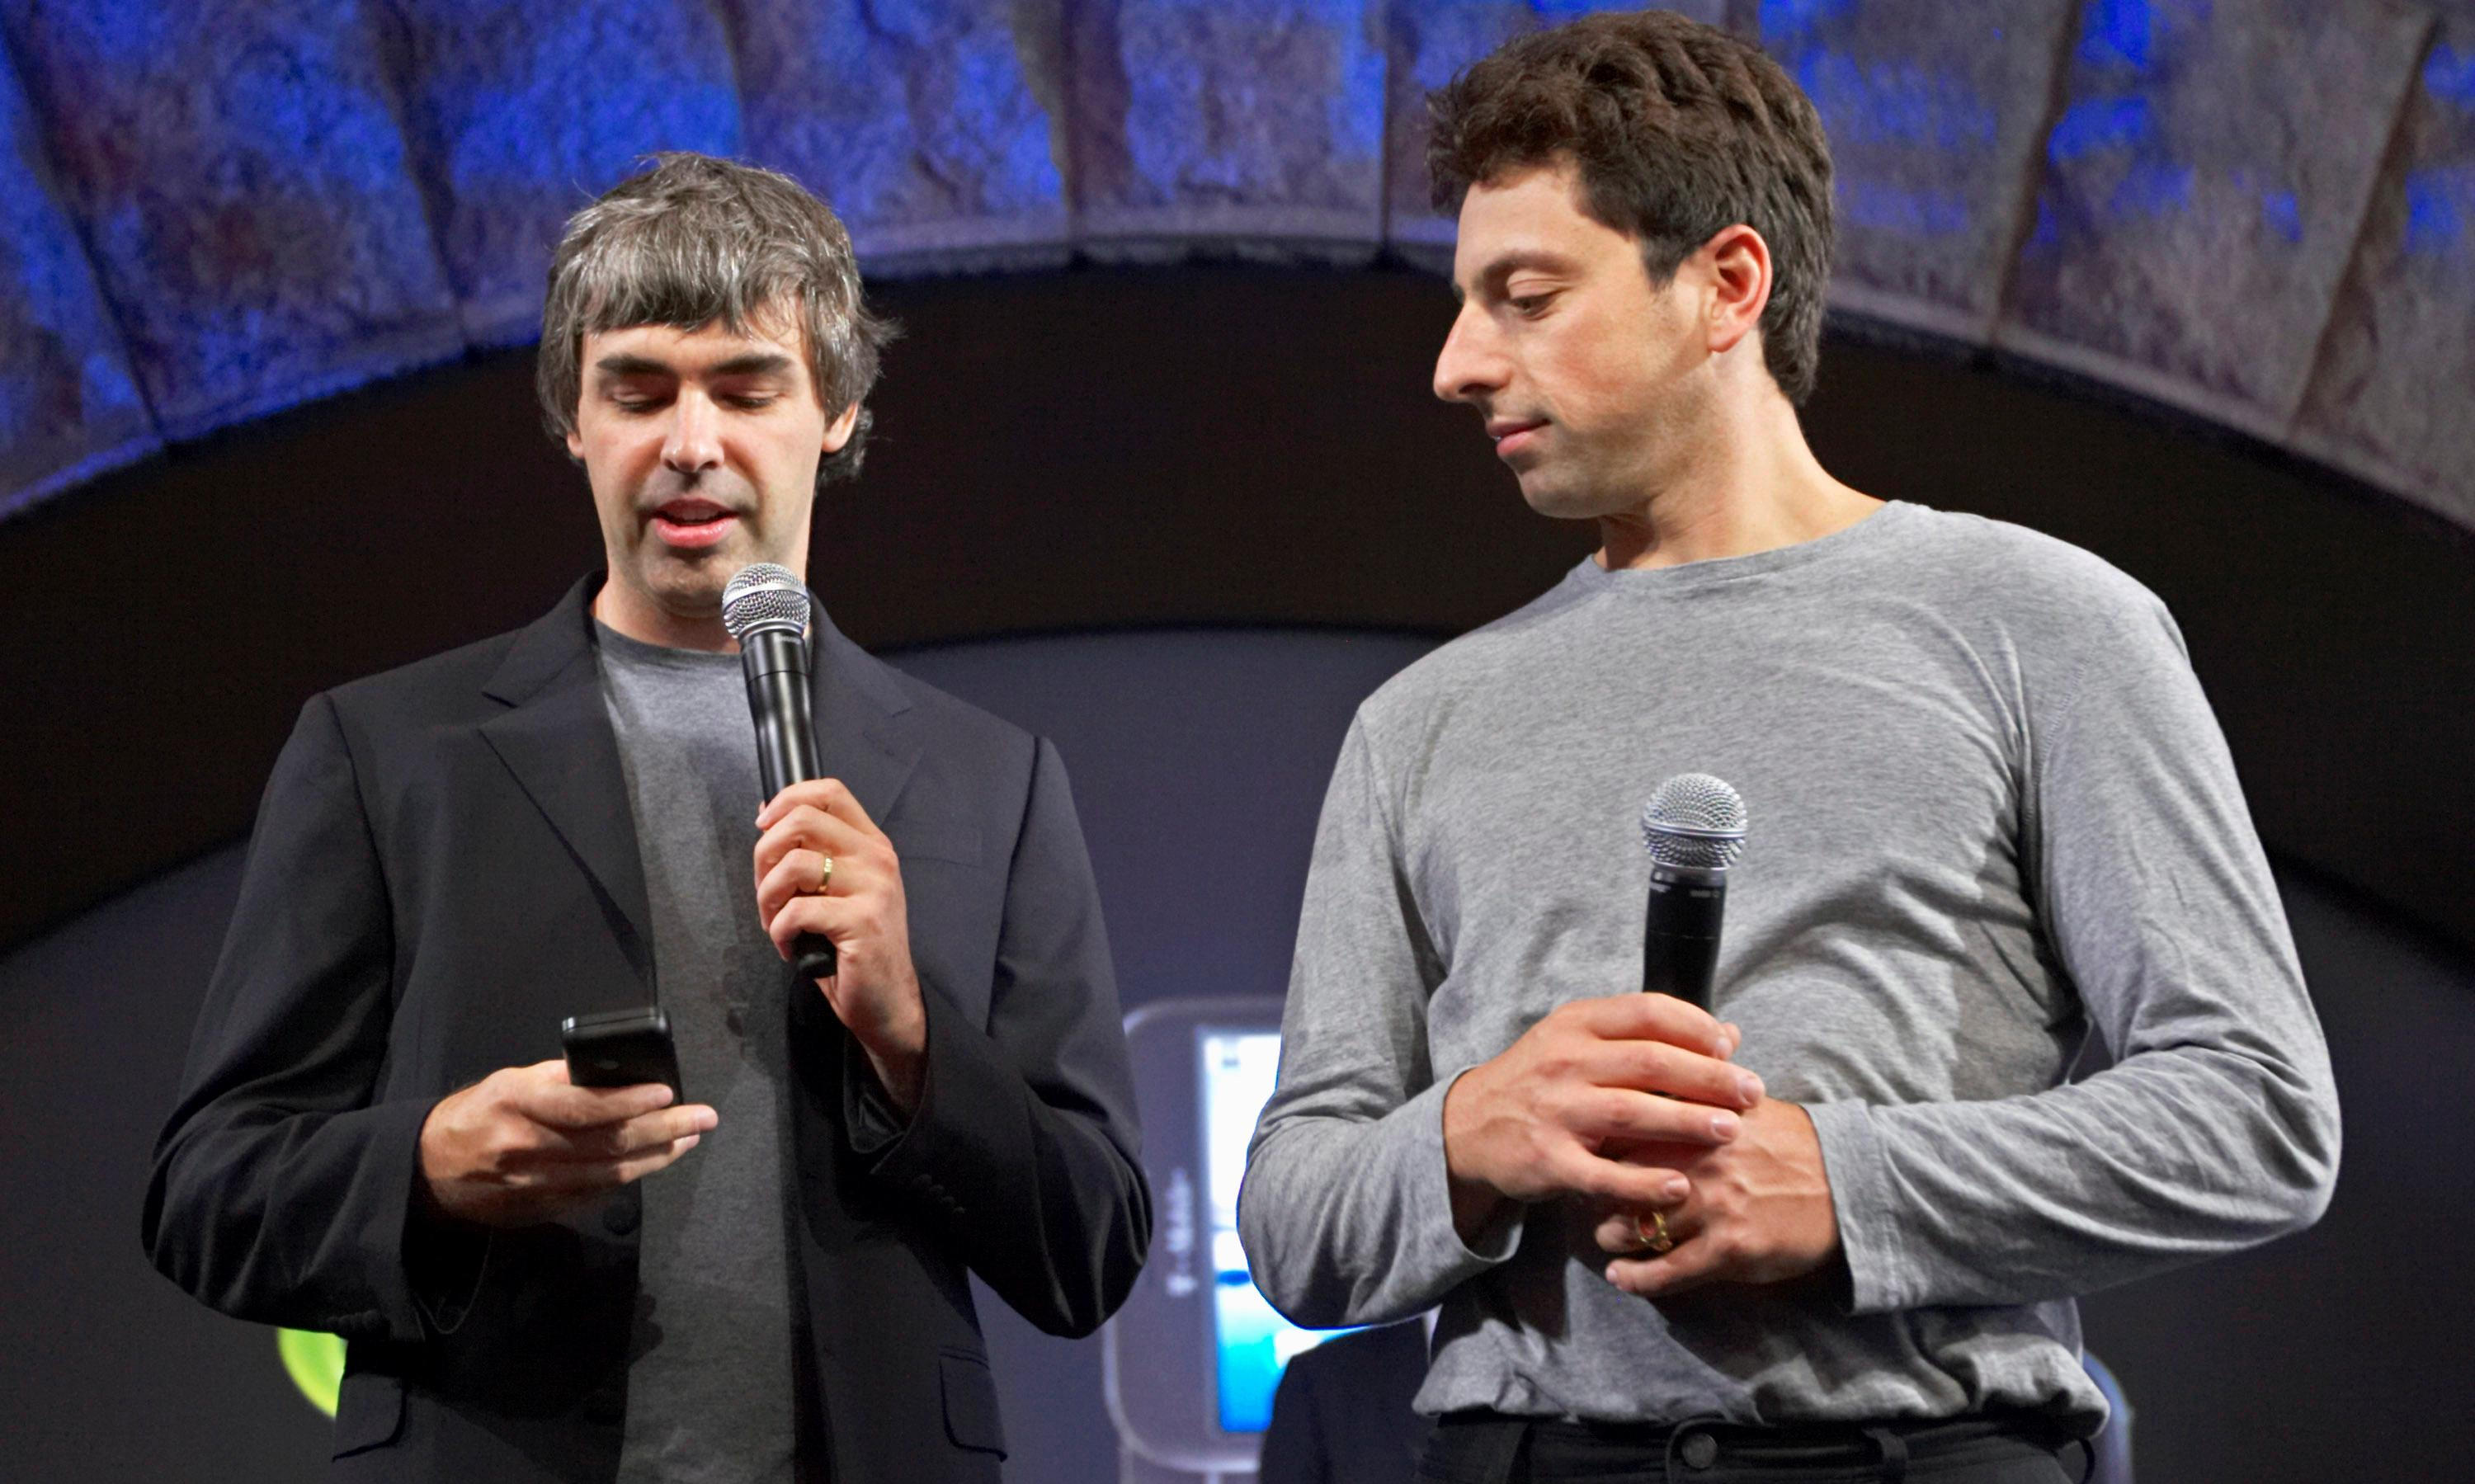 End of an era as Google founders step down from parent company